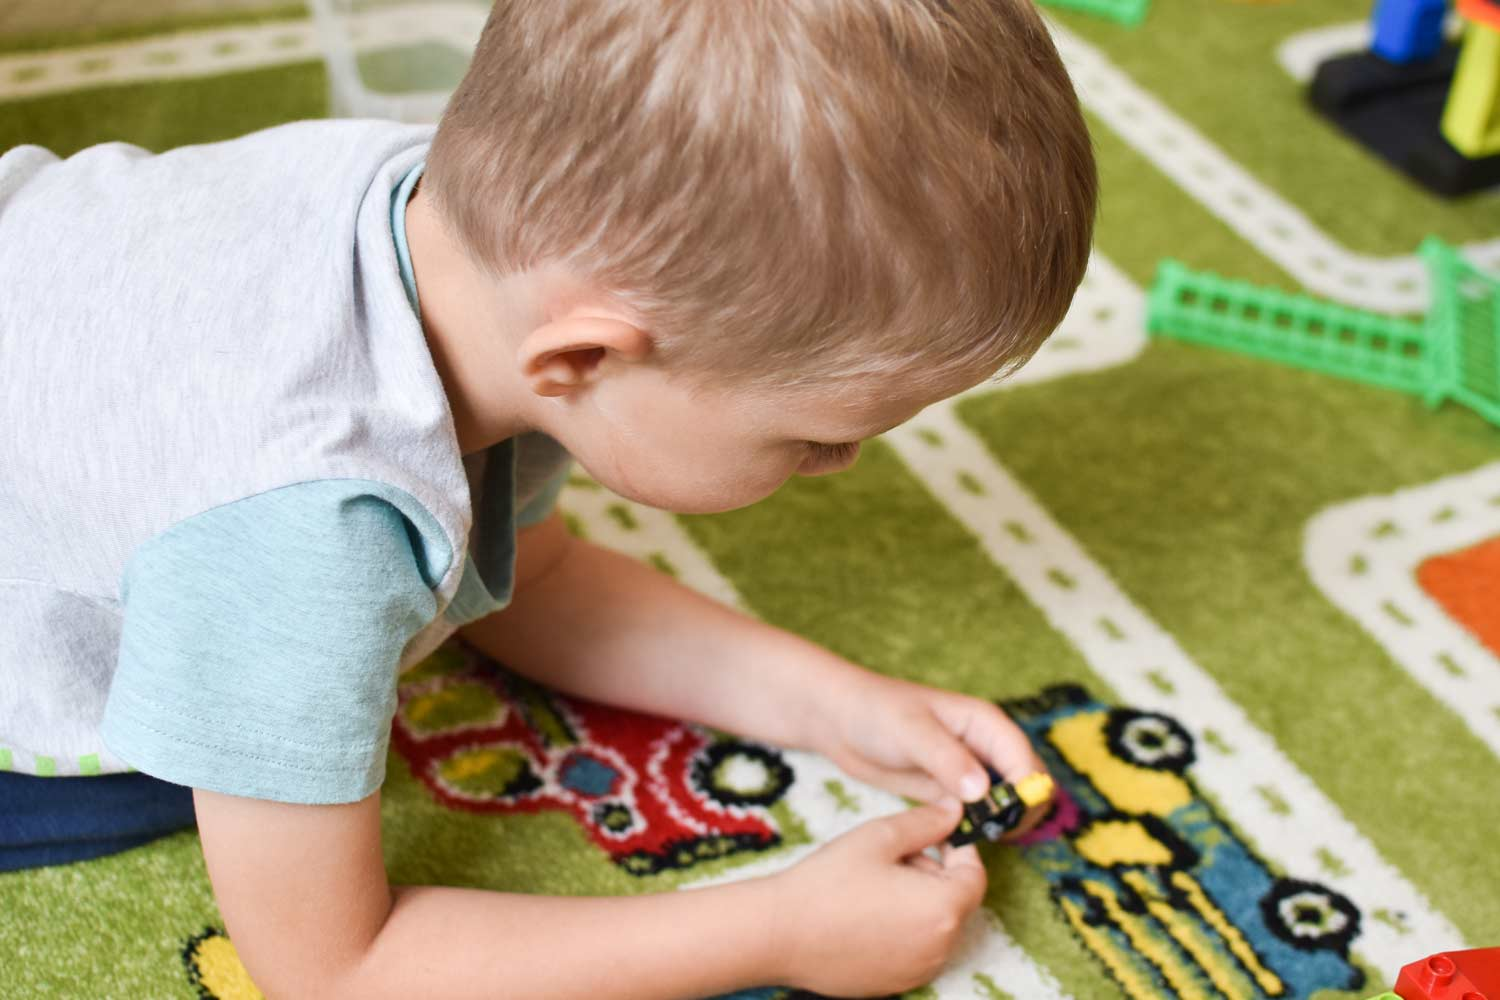 Photo of a preschool child playing with toy cars on the floor